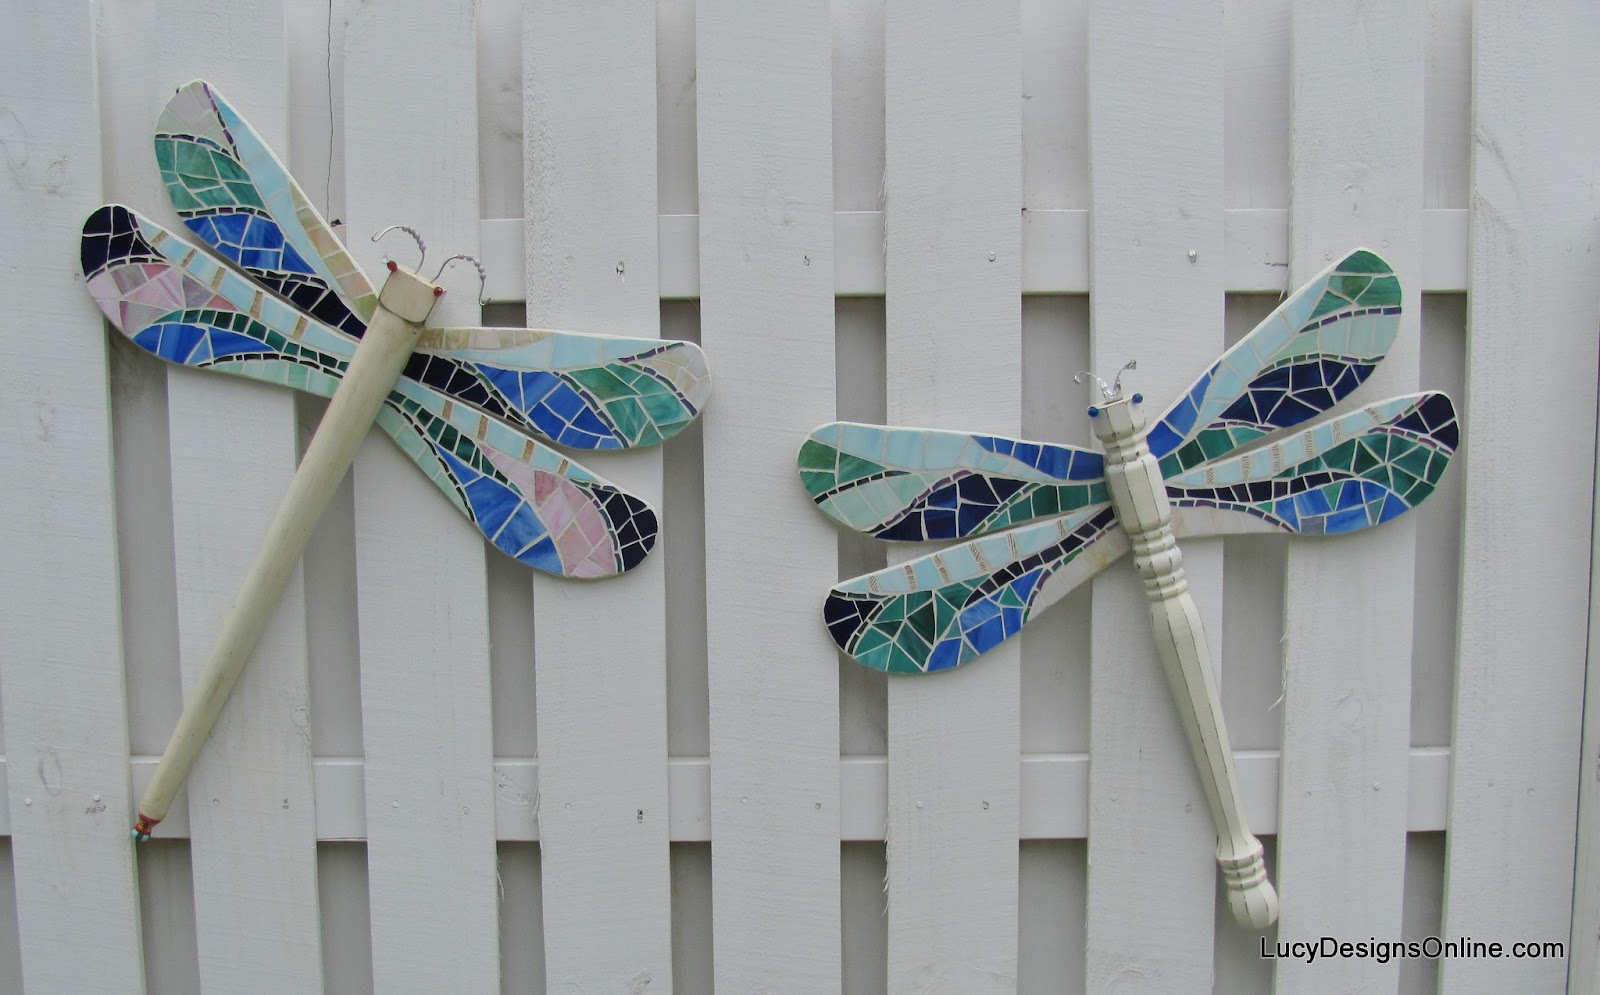 table leg dragonfly with stained glass mosaic wings